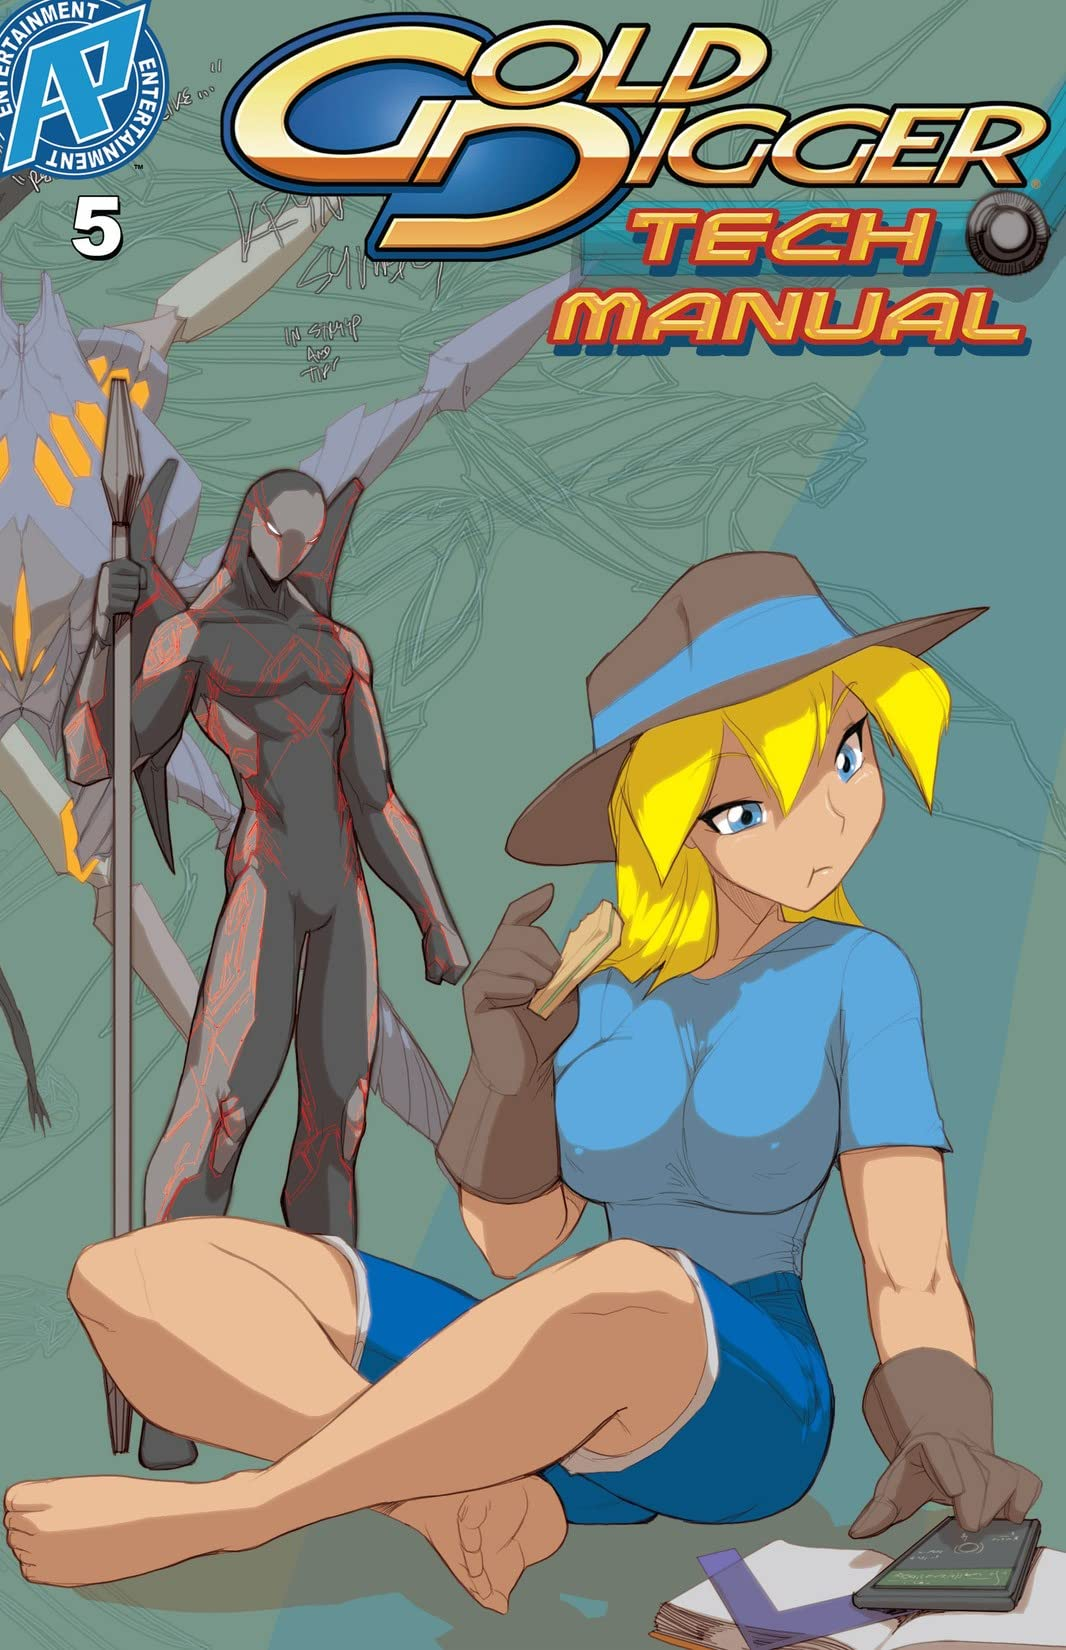 Gold Digger: Tech Manual #5